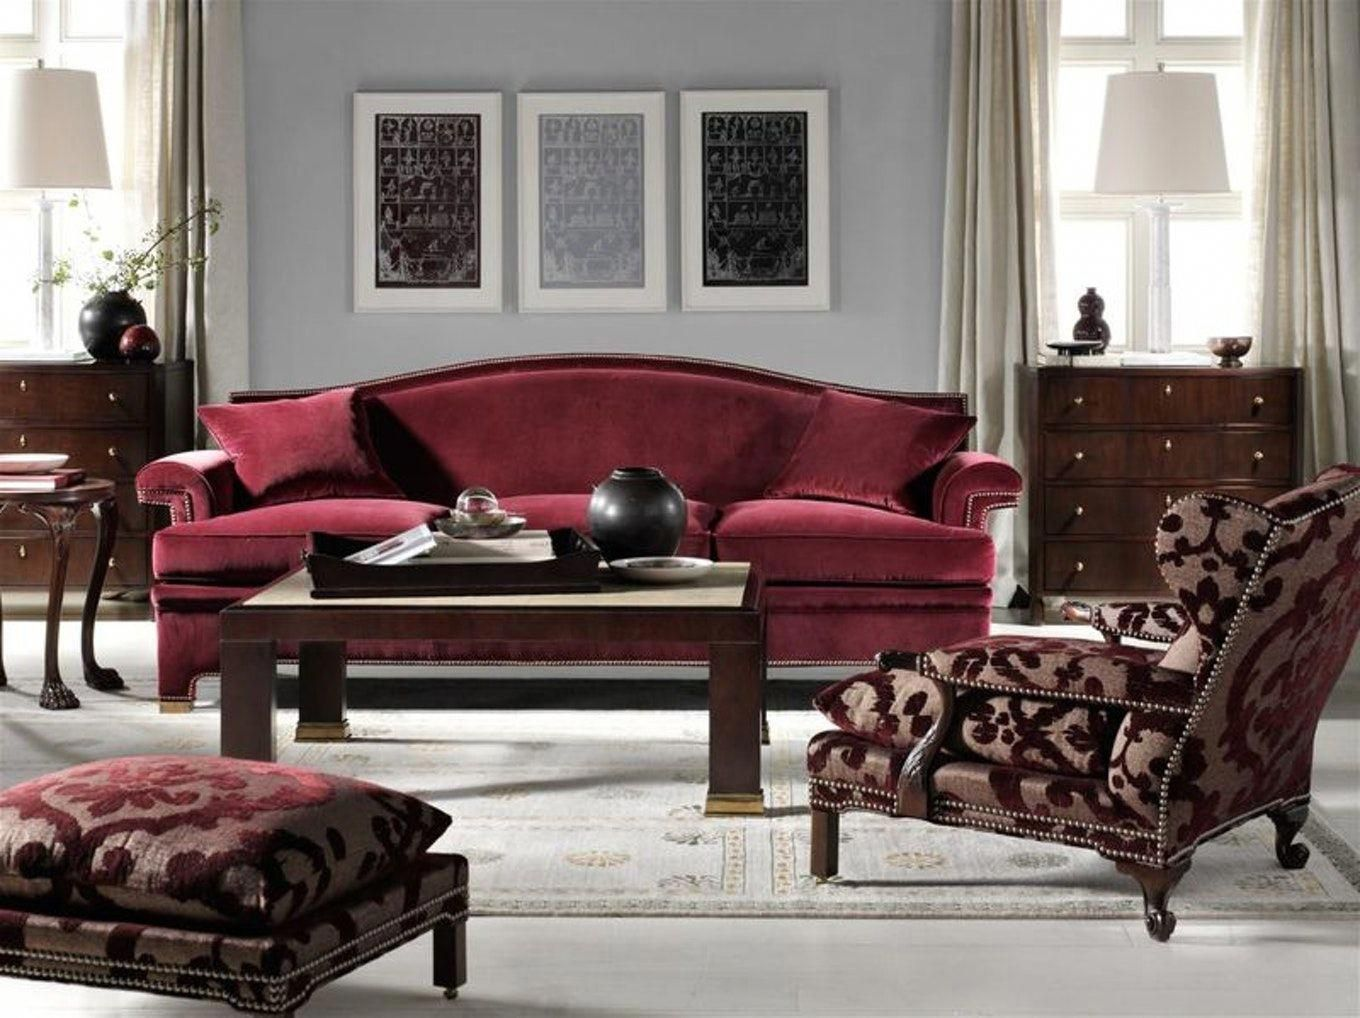 Fearsome Burgundy Living Room Decor Photo Design Maroon And